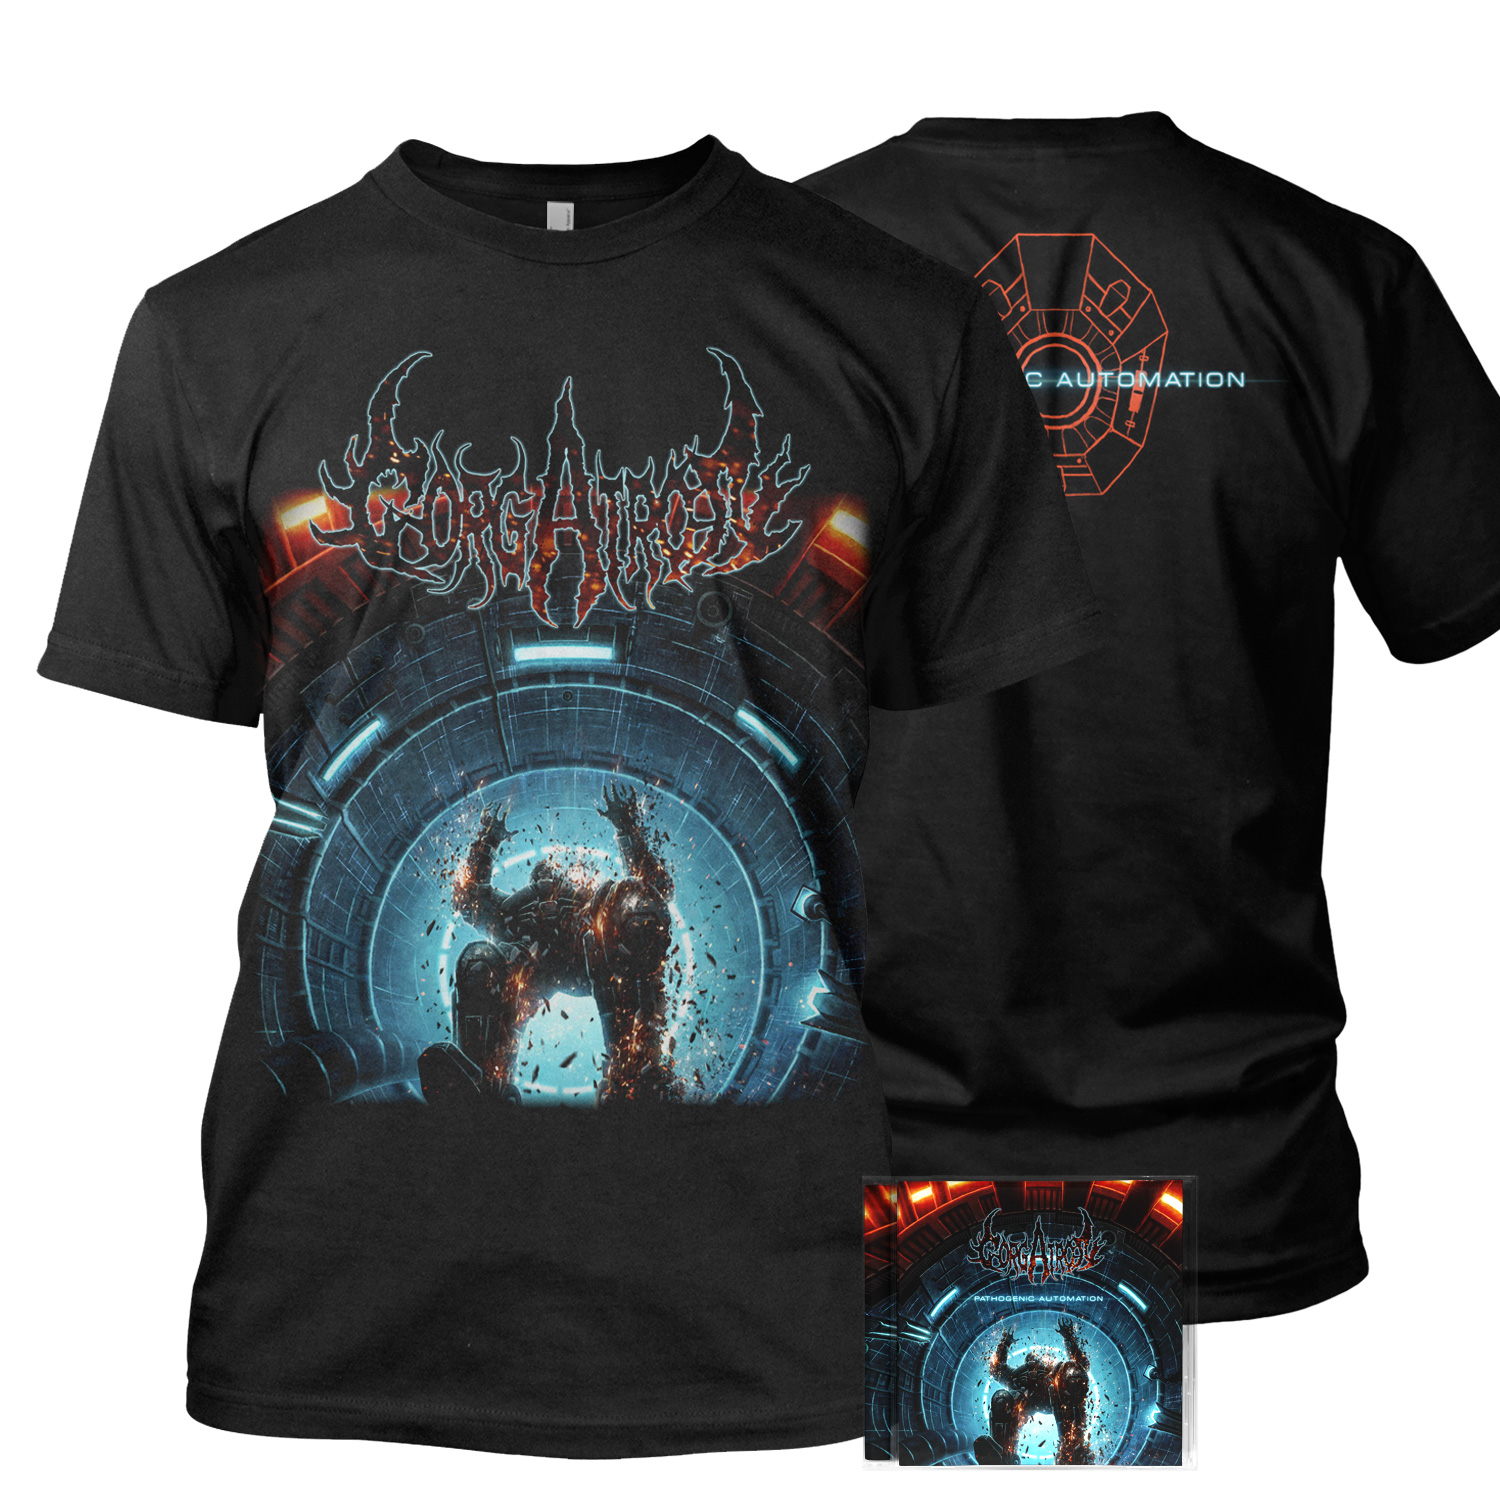 Pathogenic Automation Tee + CD Bundle